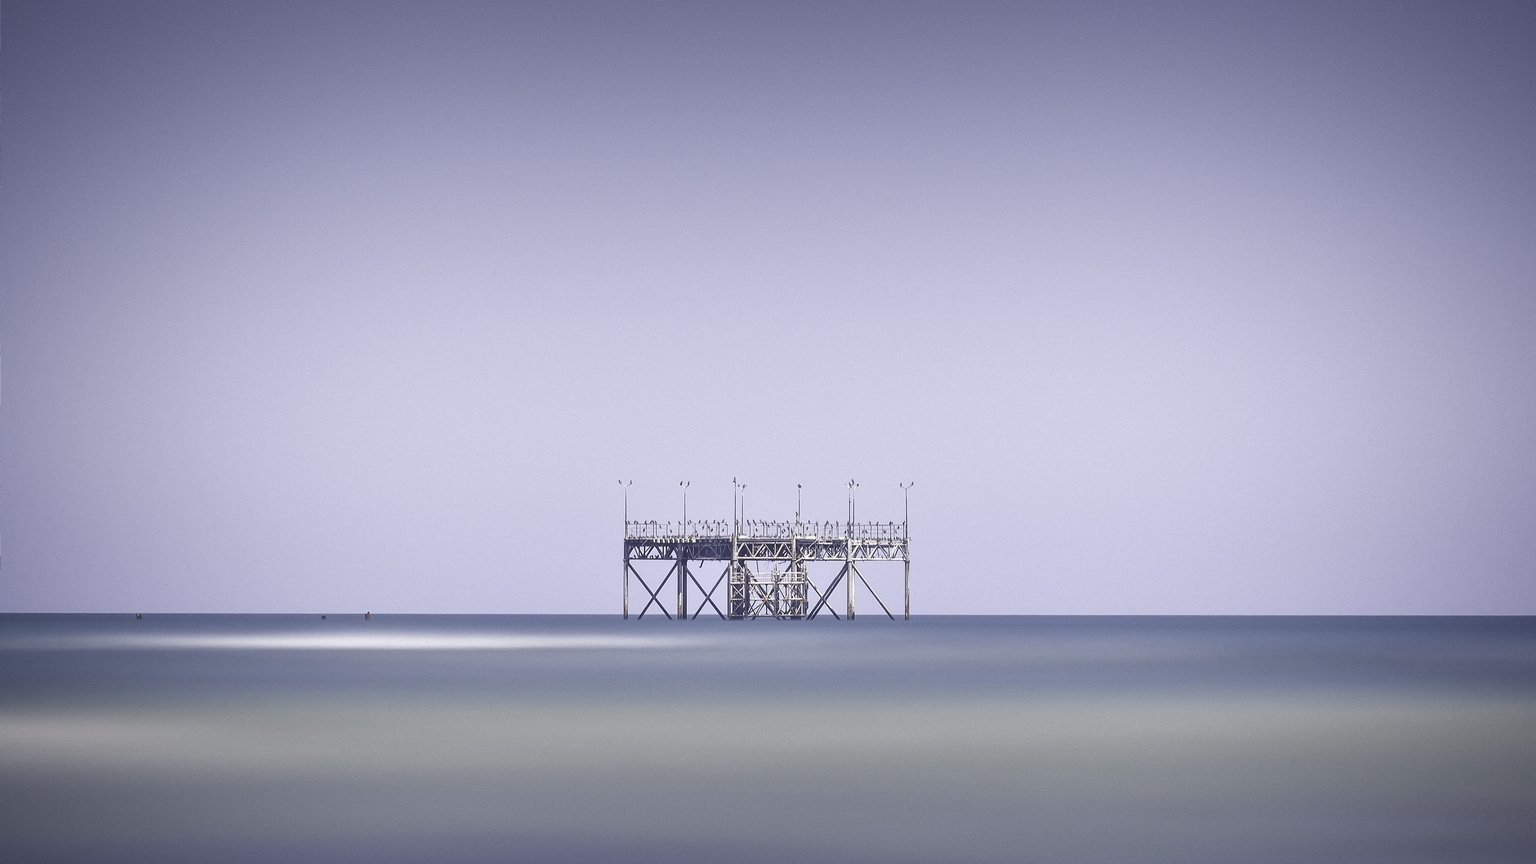 dream,landscape,alexandrucrisan,countryside,far,away,dreamland,sound,lonely,waterscape,storm,blacksea,marine,remains,waterspace,ocean,coast,exposure,le,filter,nd,blue,finart,limitededition,artphotography,shelter,loneliness,alone,longexposure,green,pier,po, Crisan Alexandru